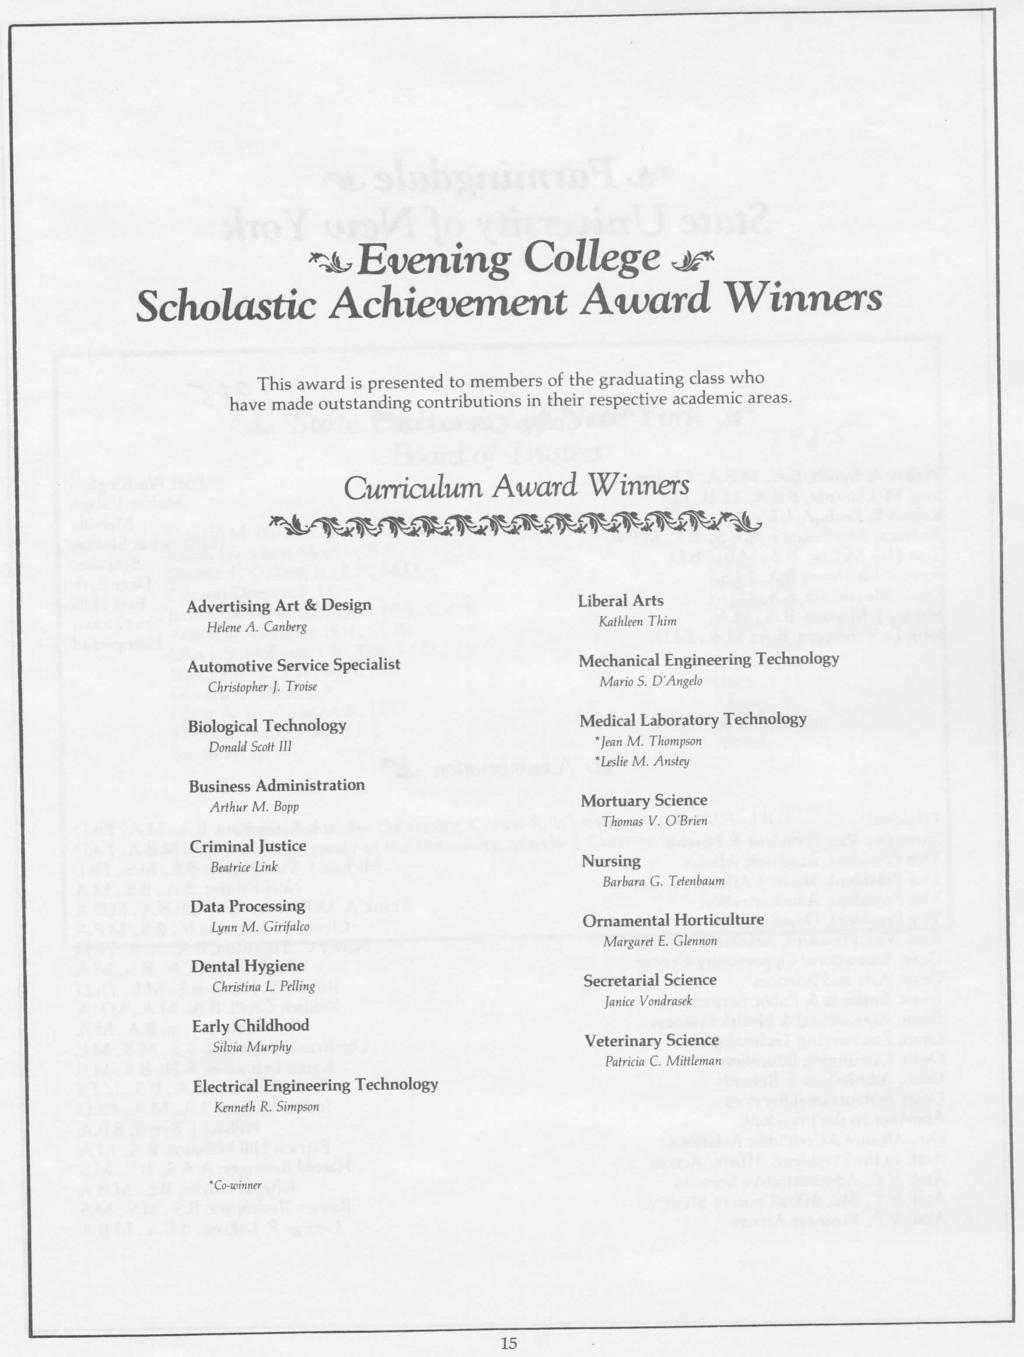 *^ Evening College Scholastic Achievement Award Winners This award is presented to members of the graduating class who have made outstanding contributions in their respective academic areas.